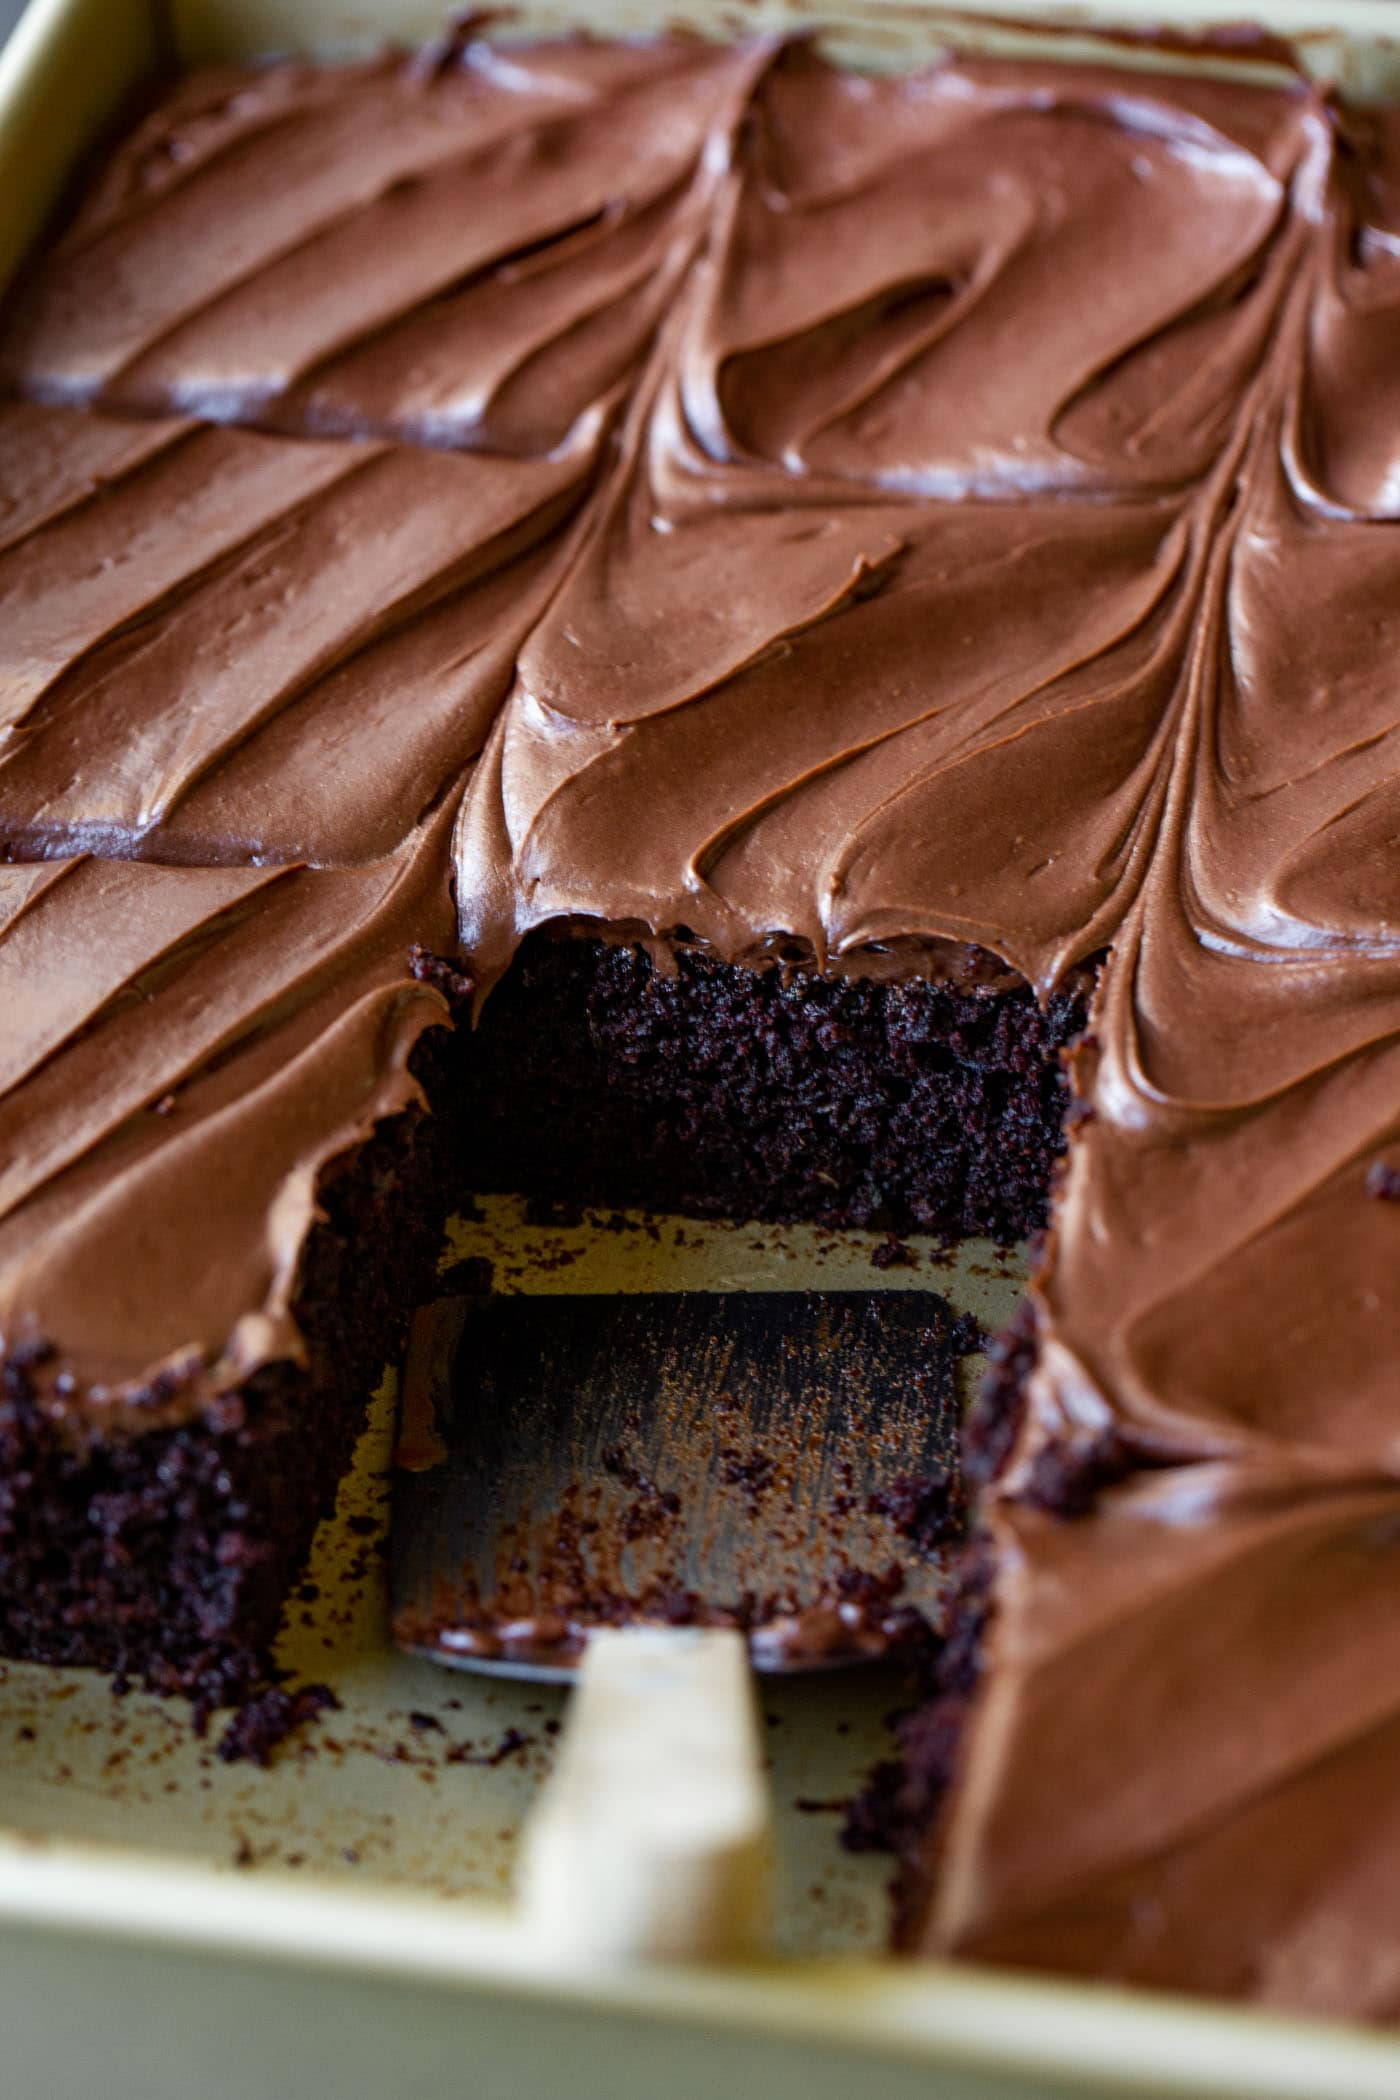 A pan of chocolate zucchini cake that has been cut into pieces and one piece has been removed. It is frosted with smooth, creamy chocolate frosting.